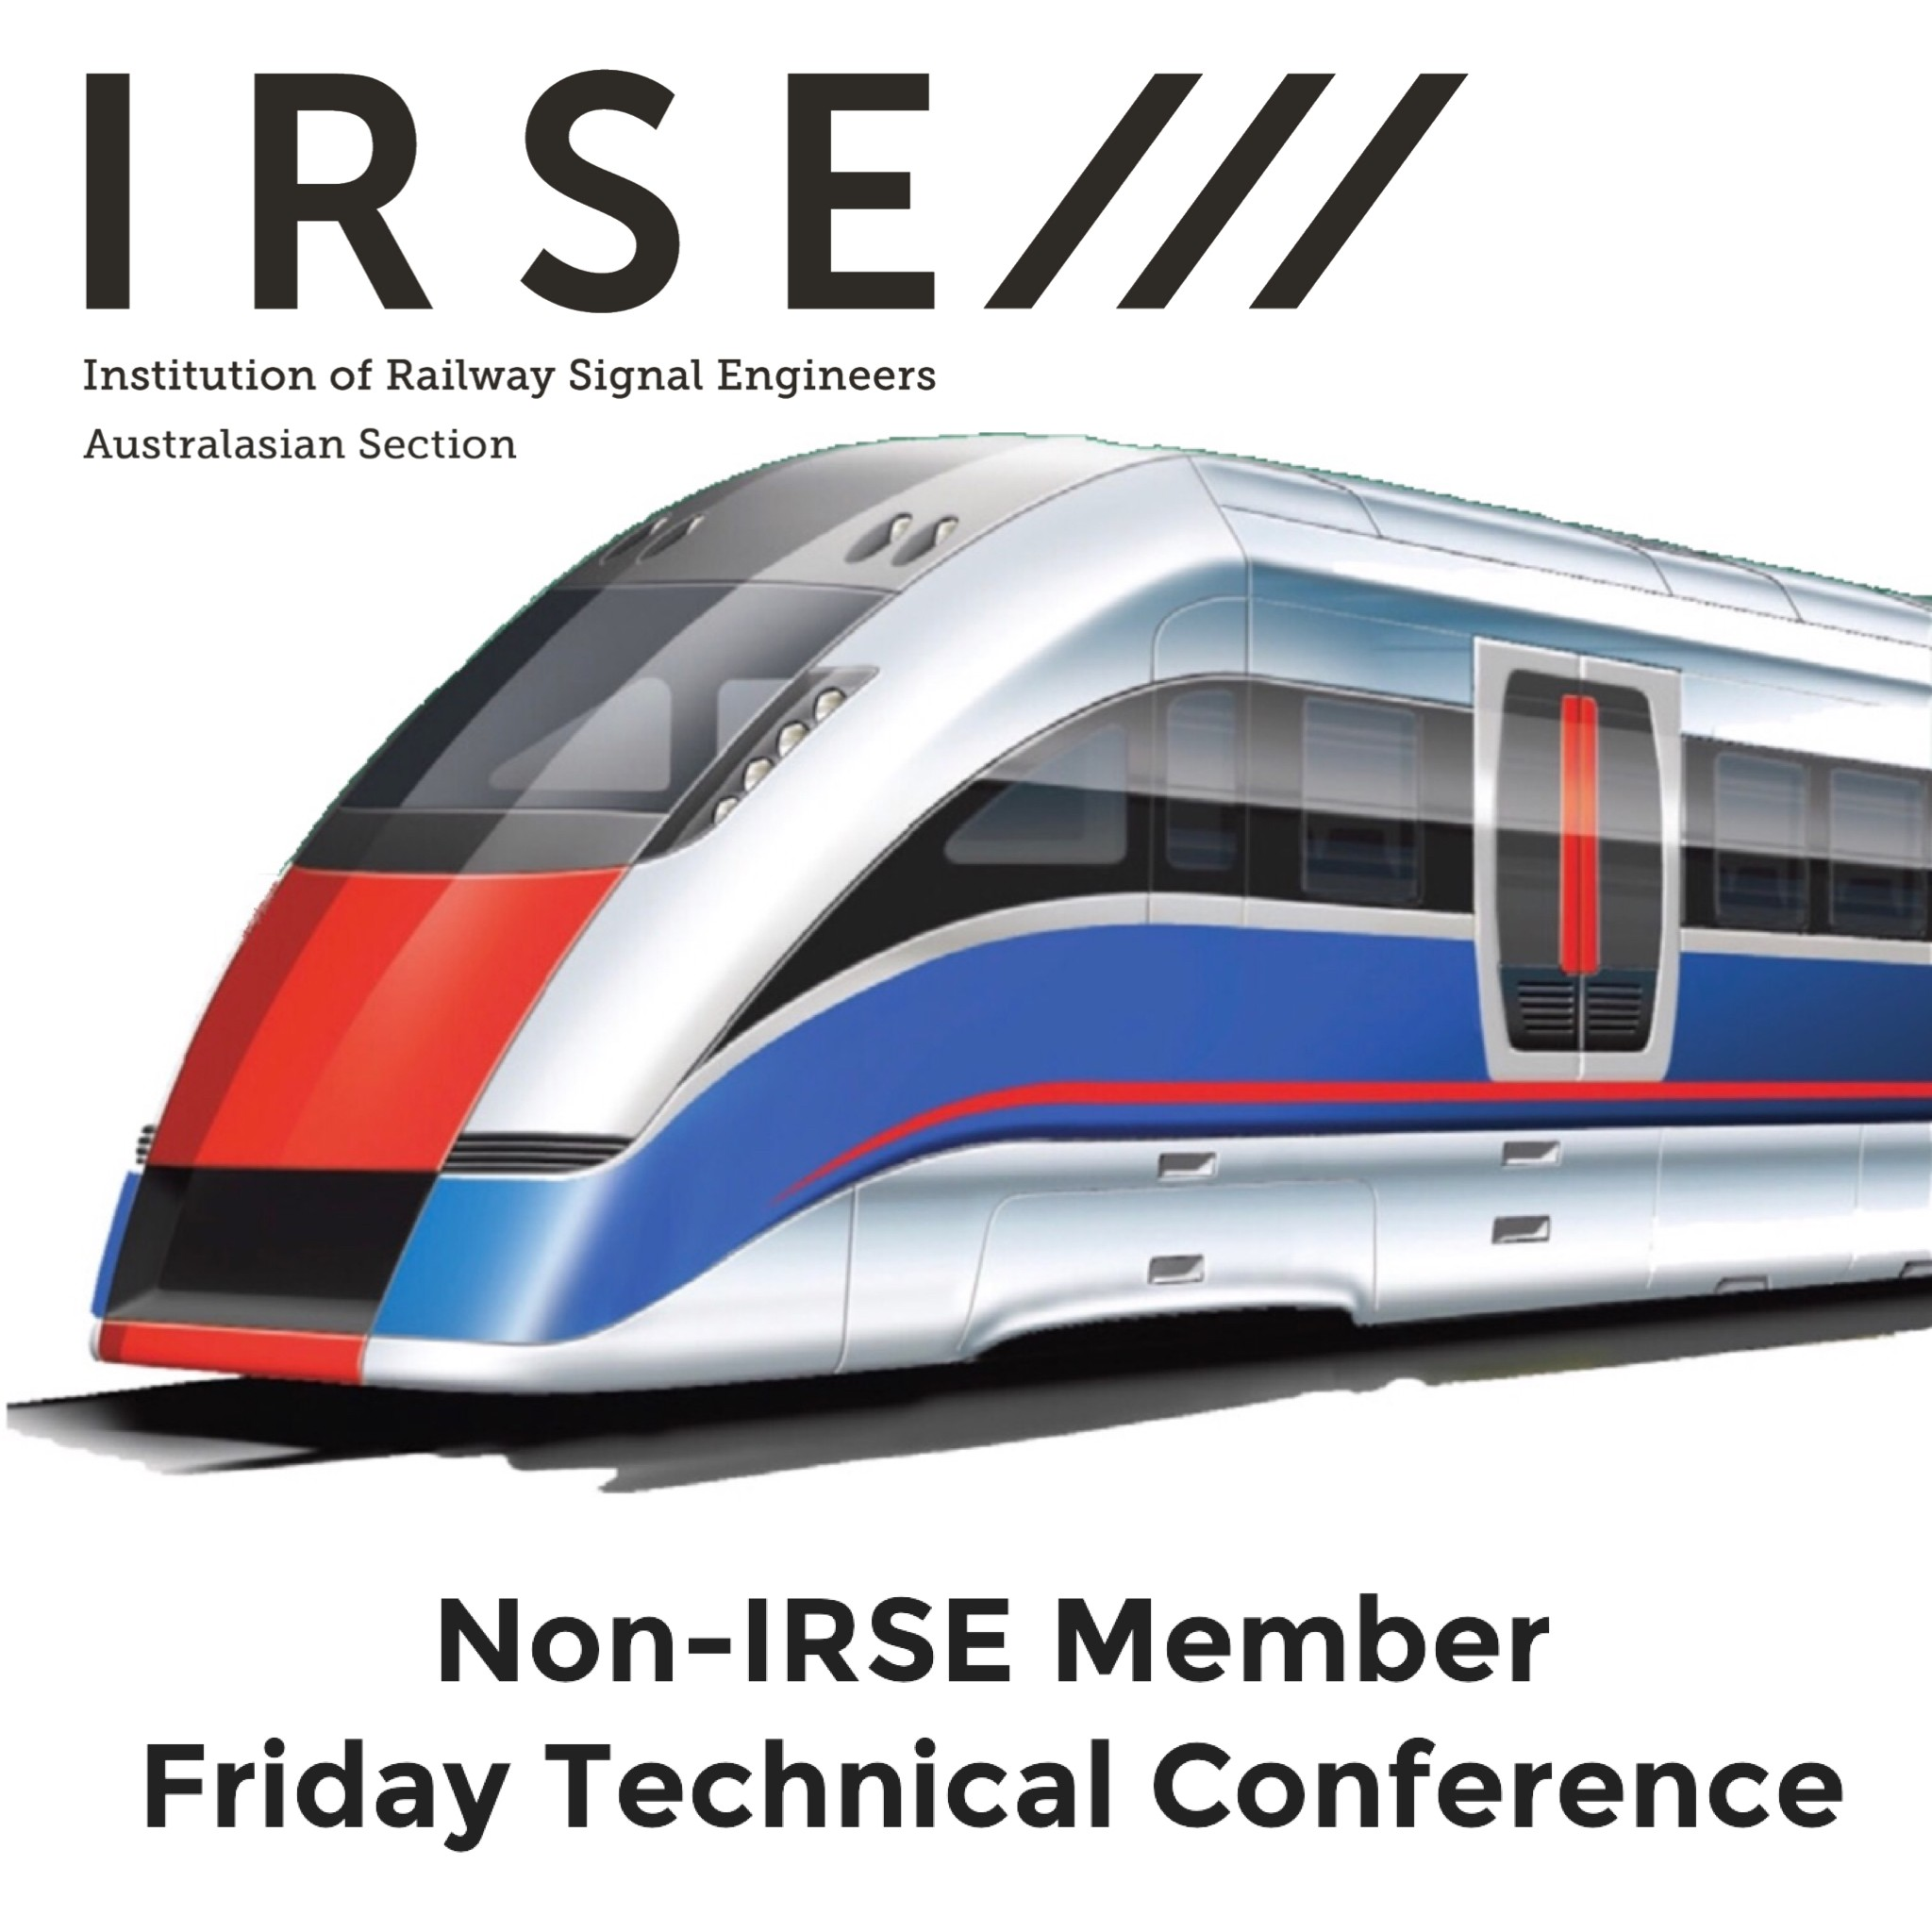 Non-IRSE Australasia Member - Friday Technical Conference